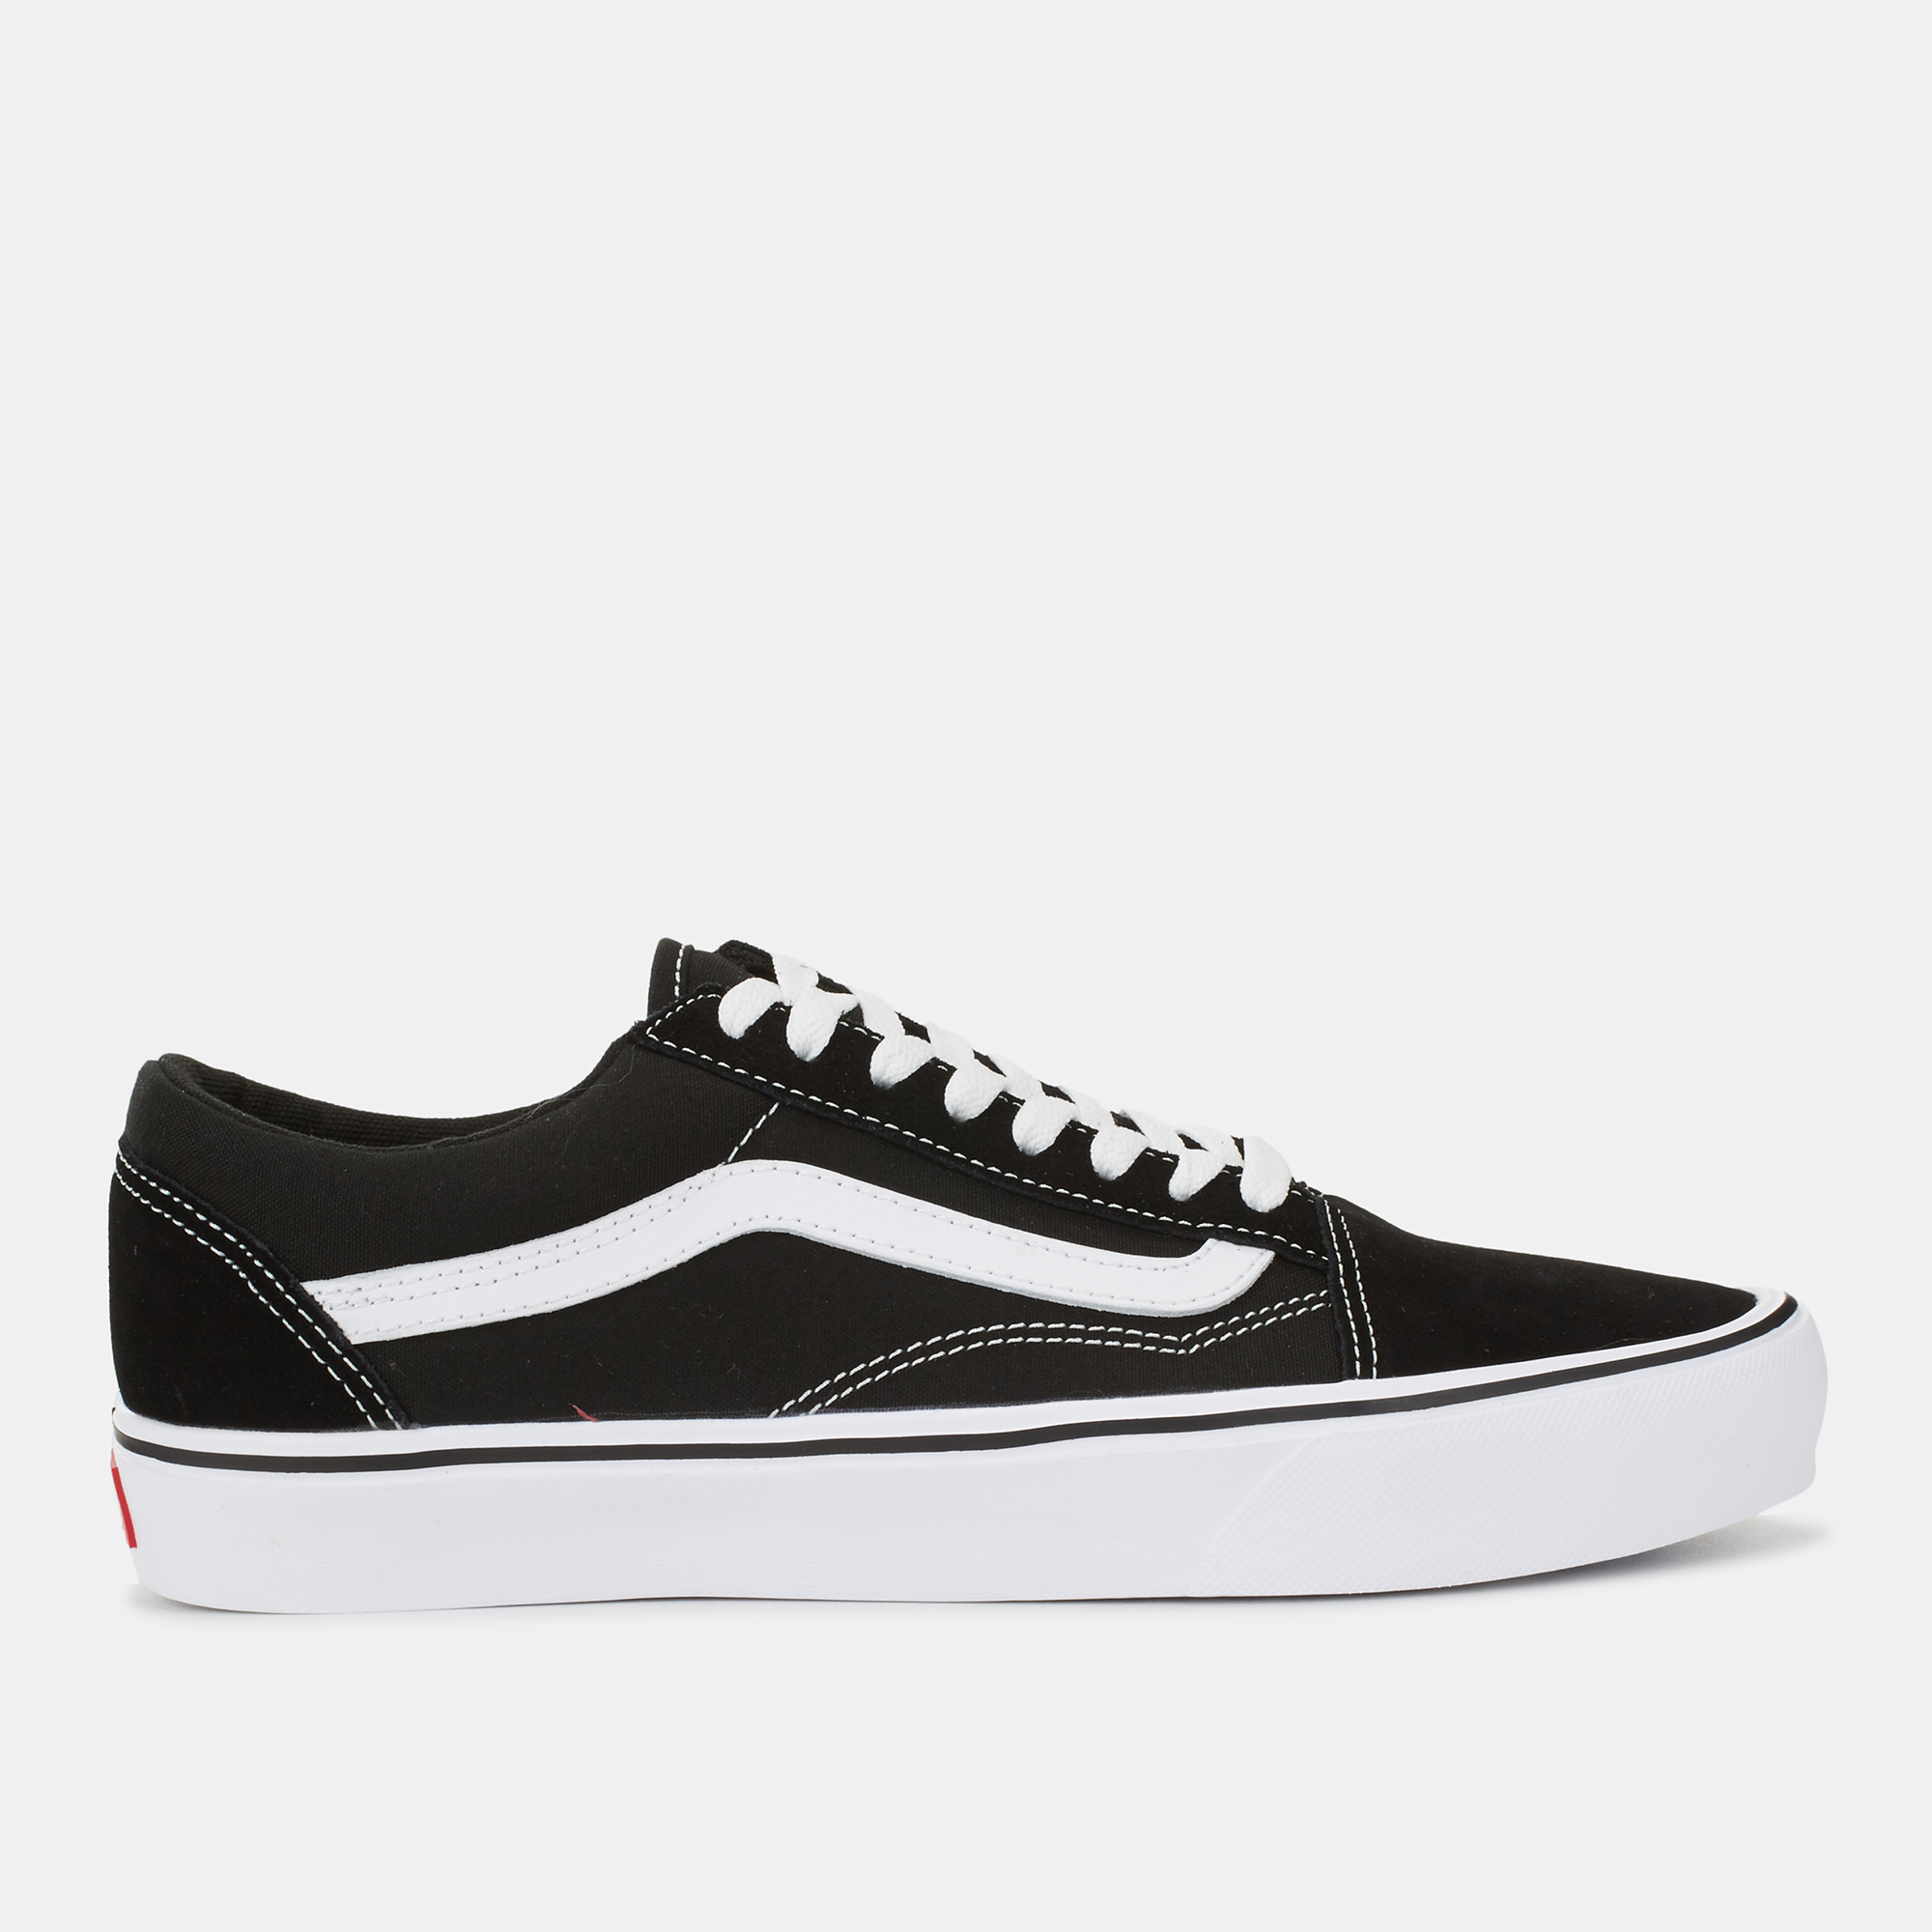 1239b2549d4c Shop Black Vans Old Skool Lite Shoe for Mens by Vans